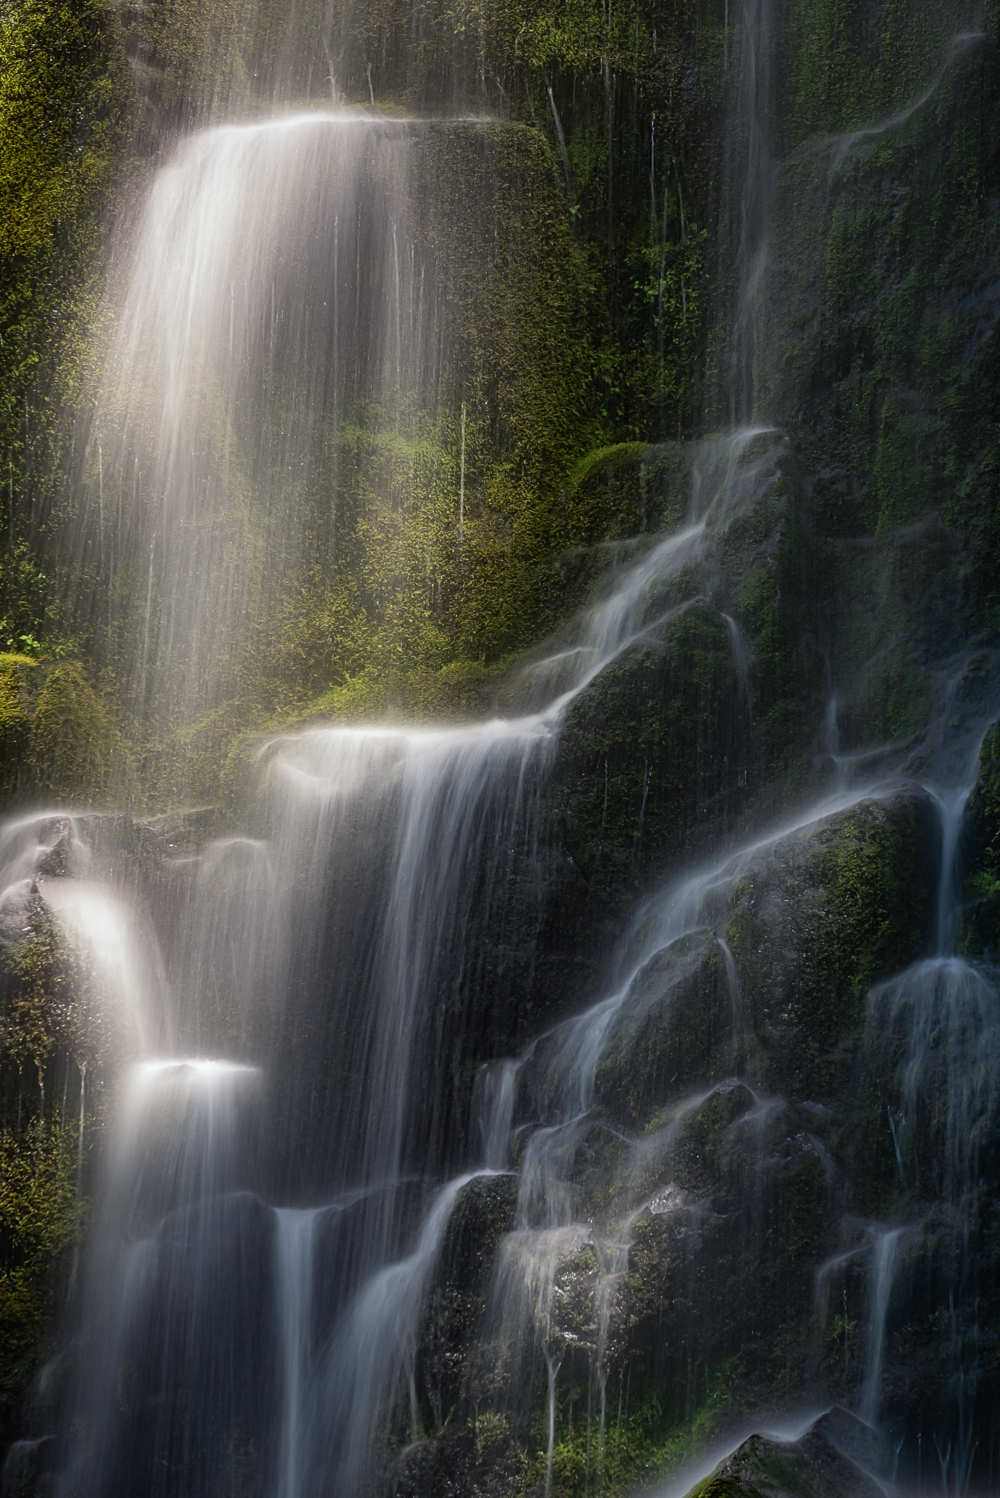 Thousand streams over basalt and moss: this pretty much sums up the magic of Proxy Falls.